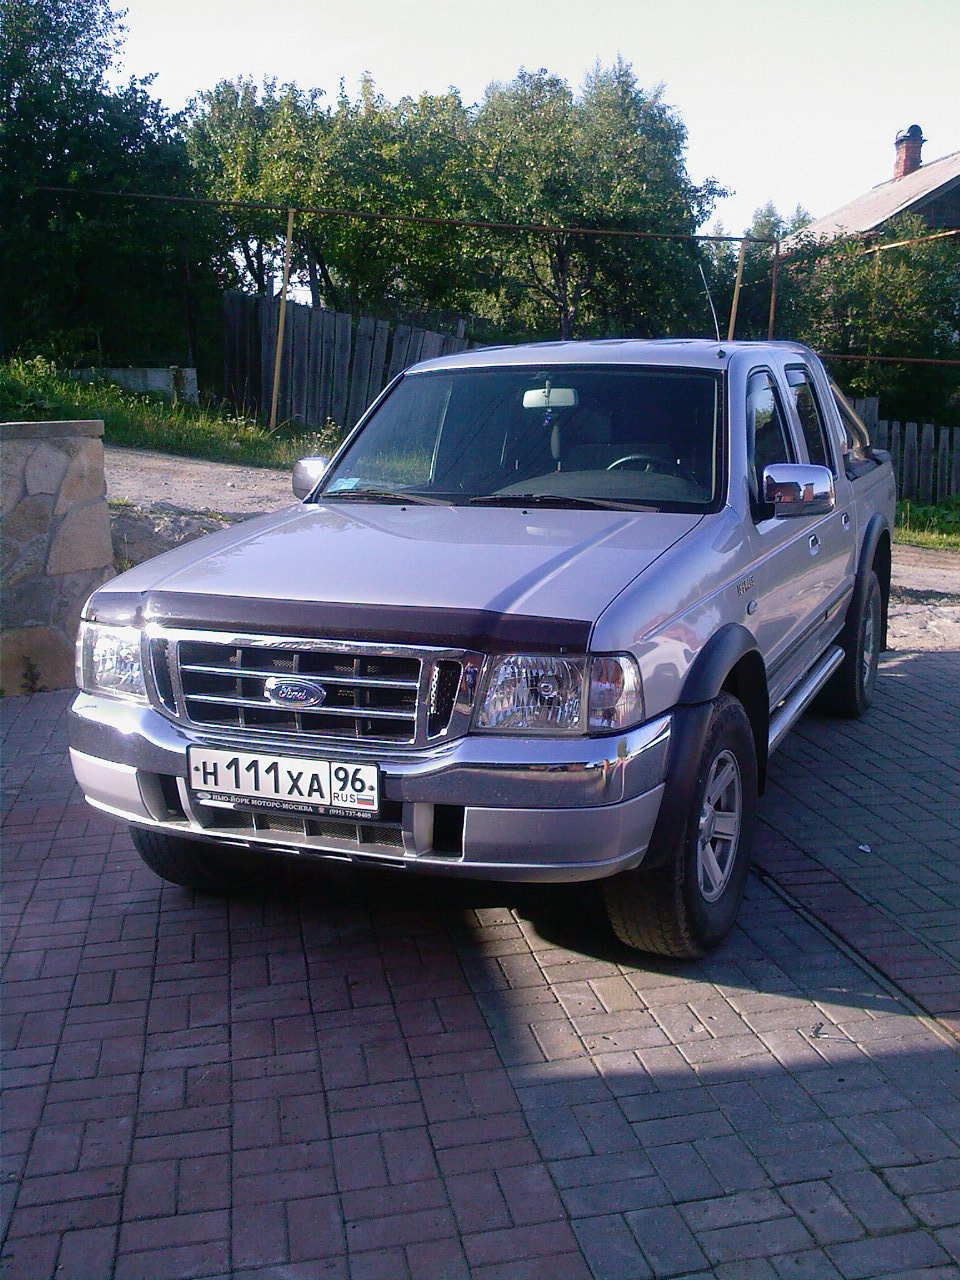 2005 ford ranger photos 2 5 diesel manual for sale. Black Bedroom Furniture Sets. Home Design Ideas